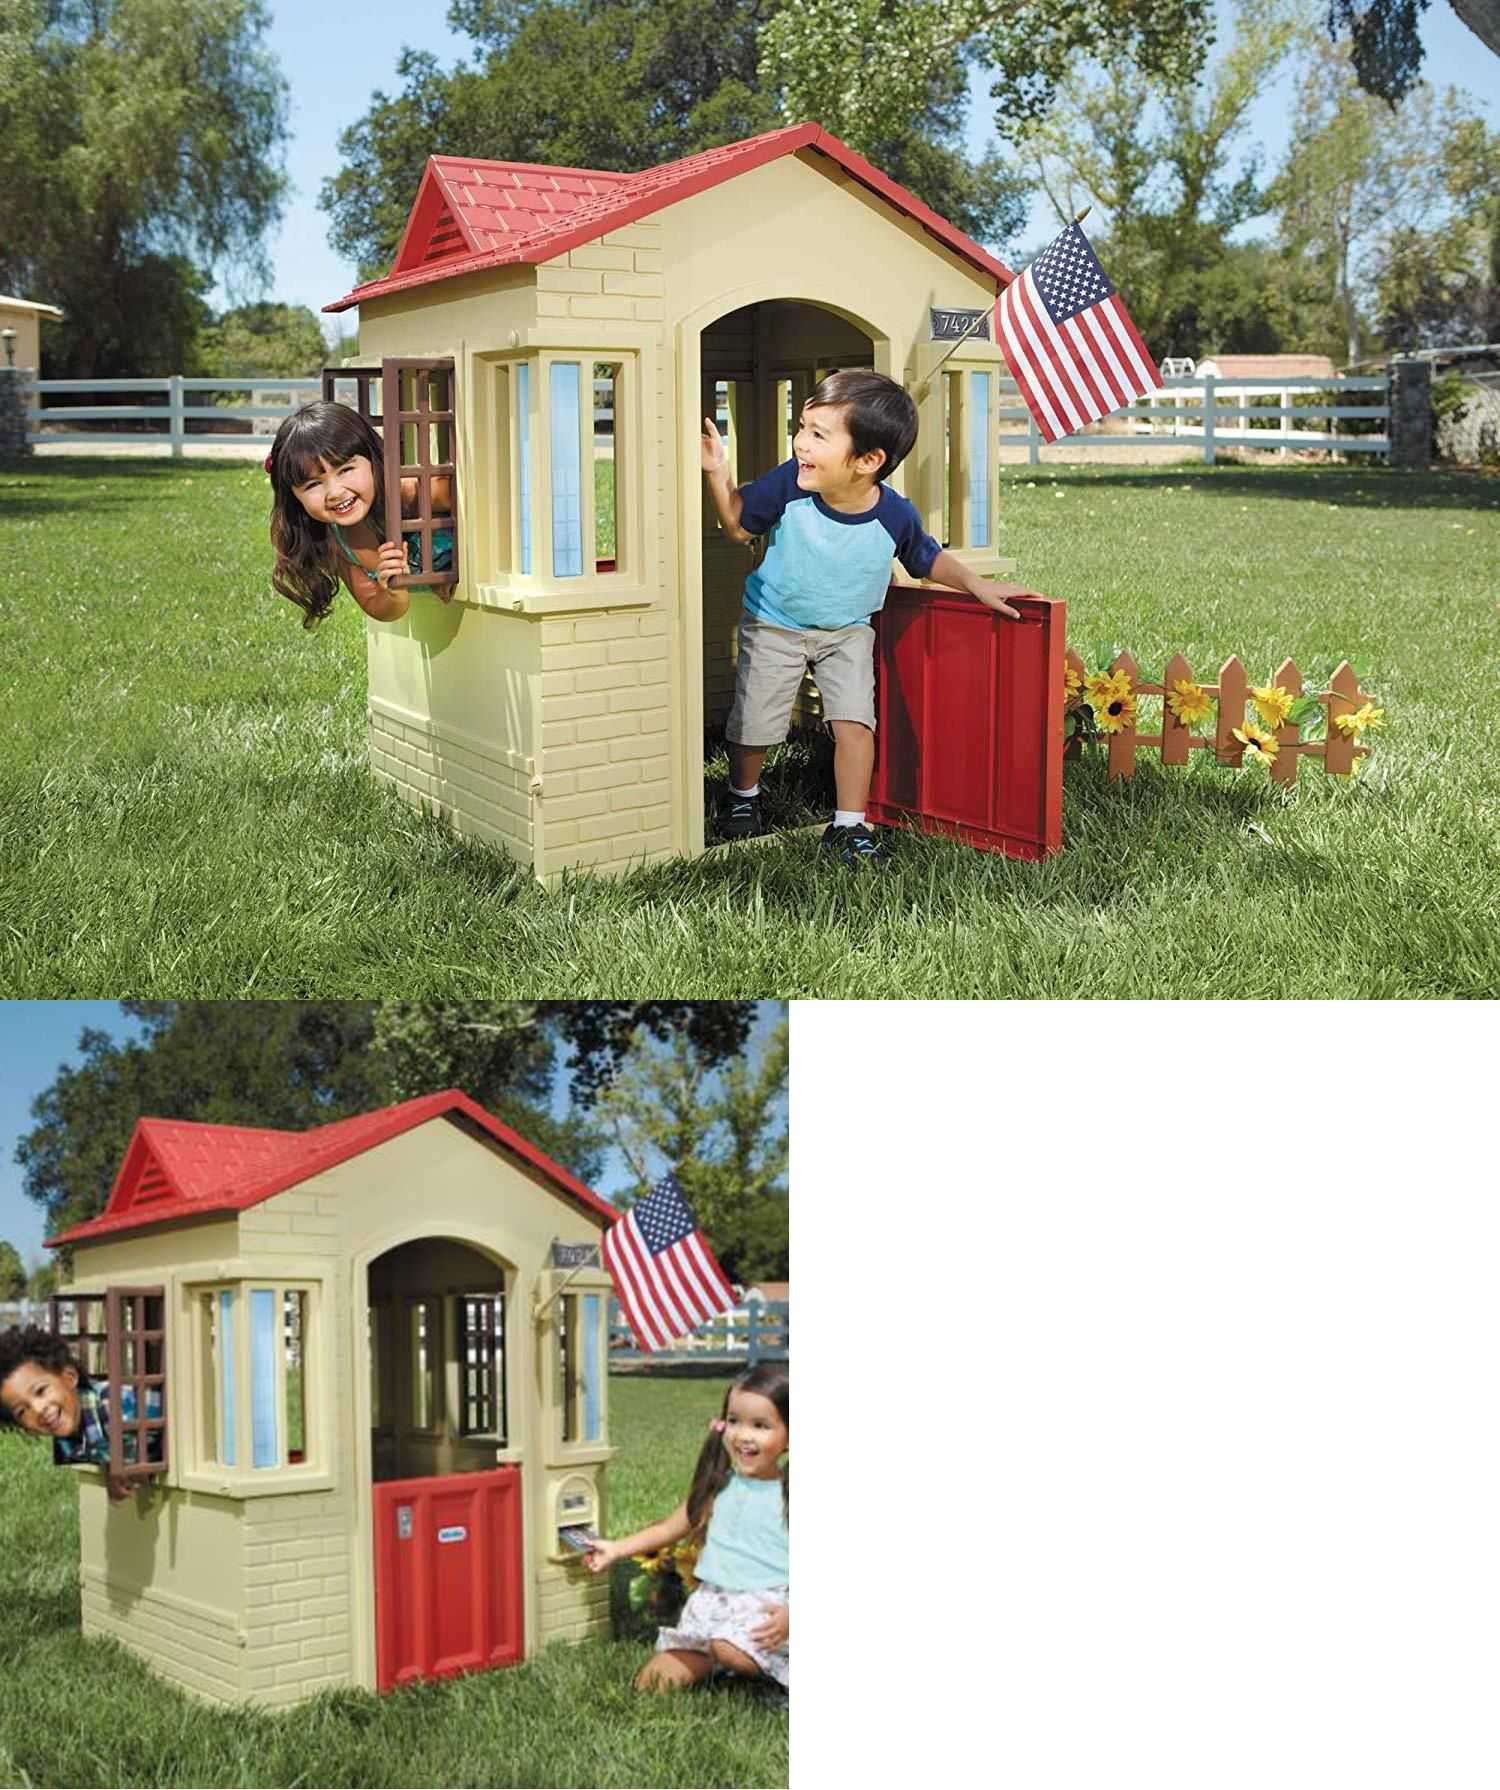 Permanent Playhouses 145995 Little Tikes Cape Cottage Playhouse Tan Indoor Outdoor It Now Only 114 88 On Ebay